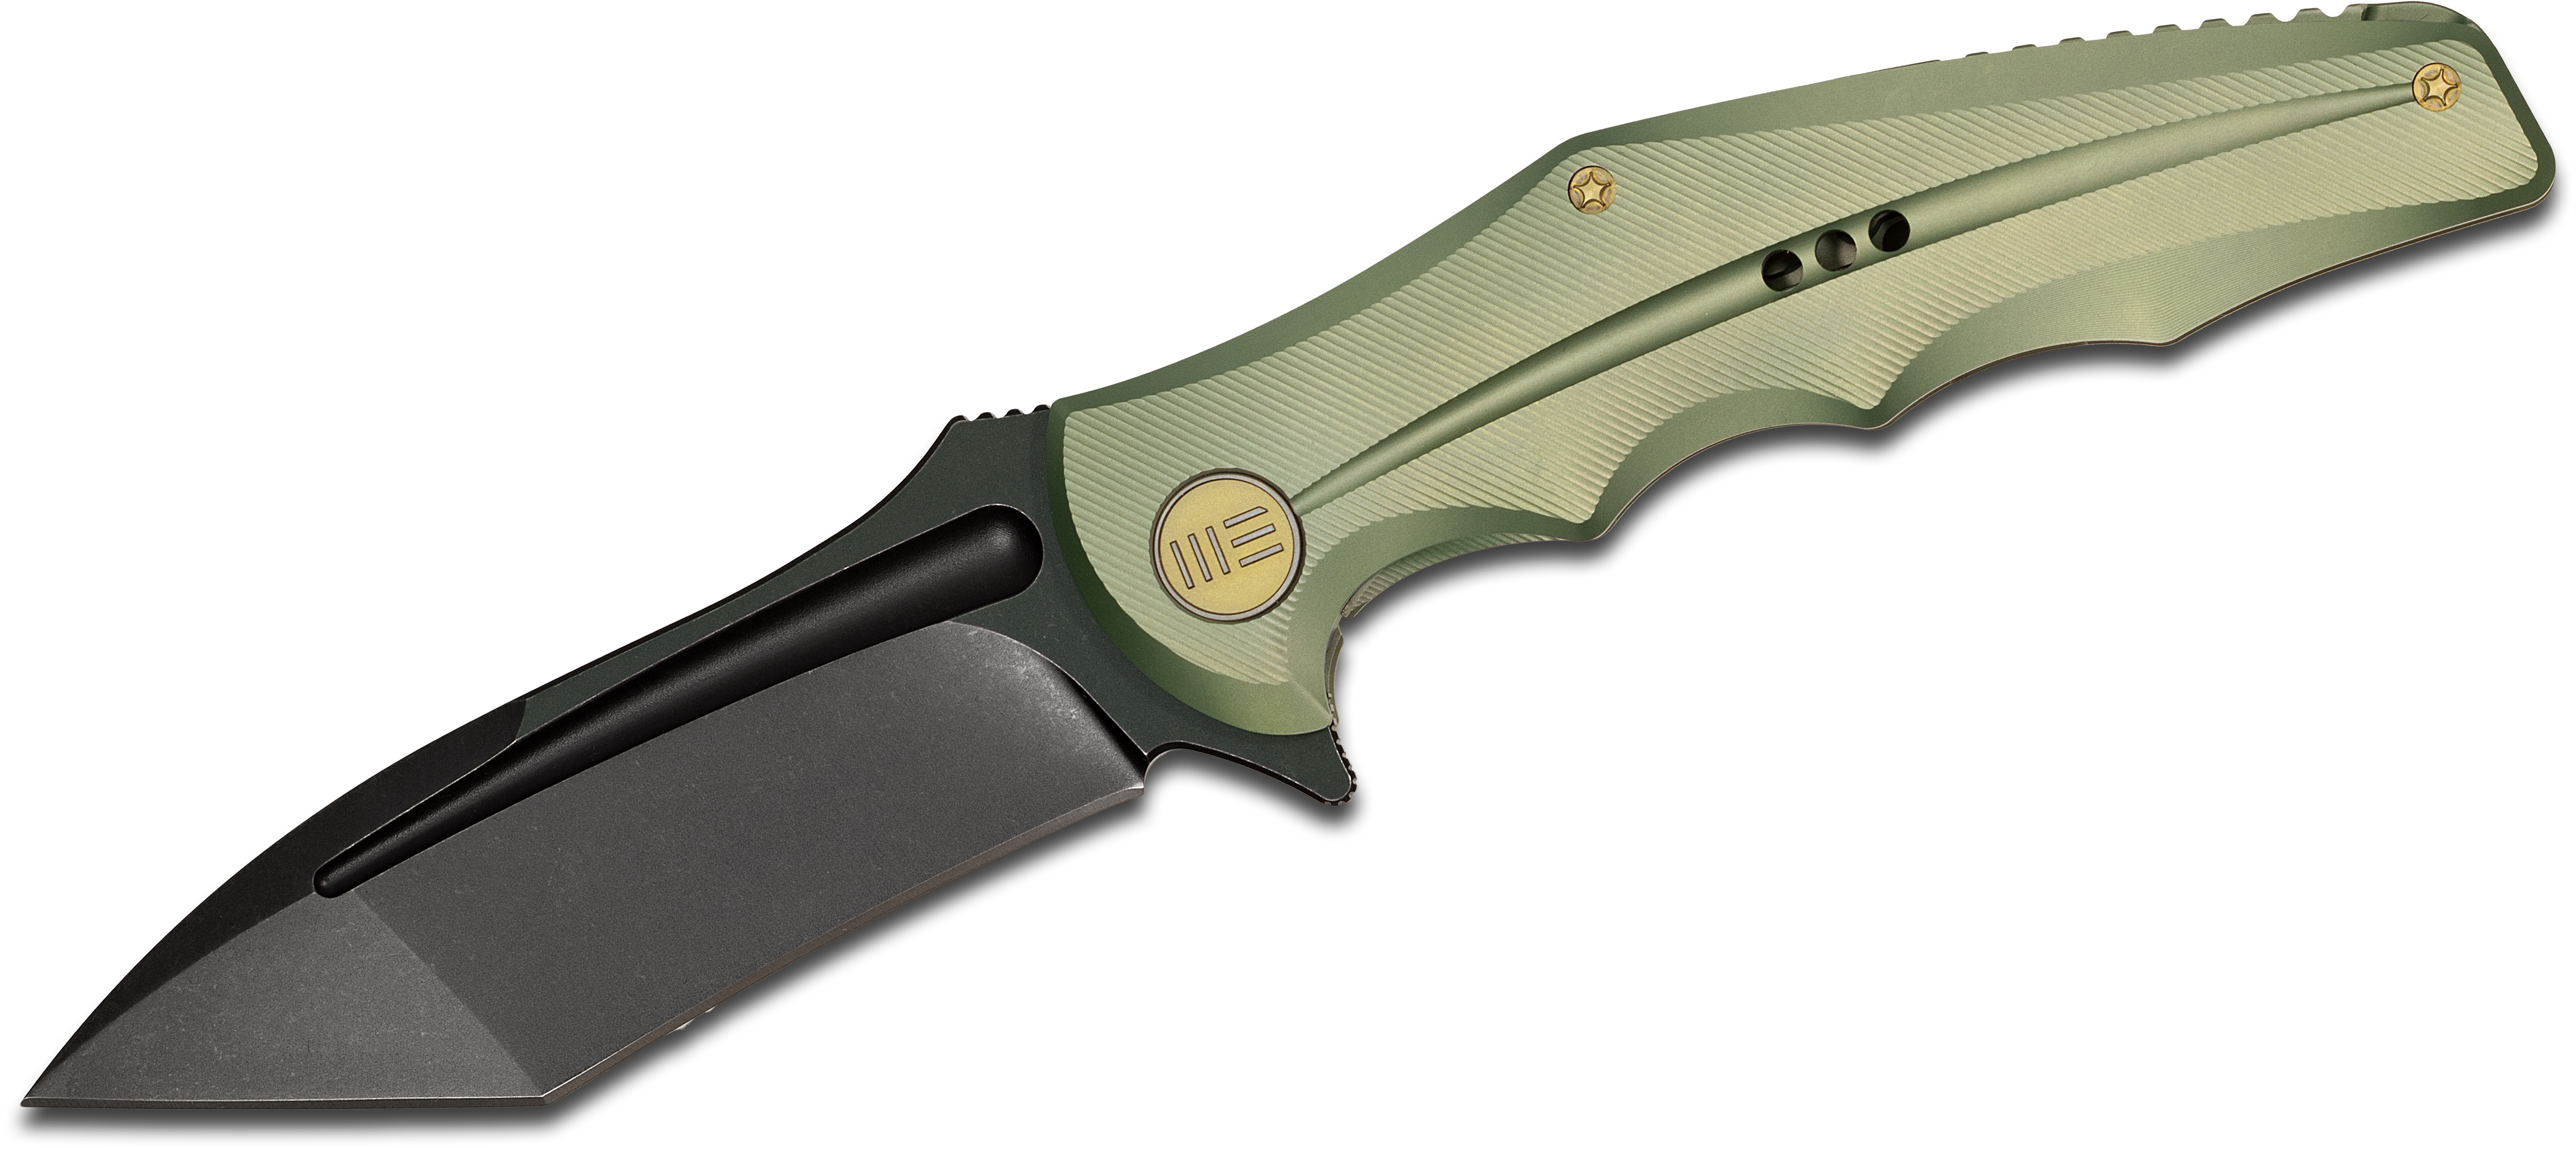 We Knife Company 608A Flipper 3.94 inch S35VN Black Stonewashed Tanto Blade, Green Anodized Titanium Handles